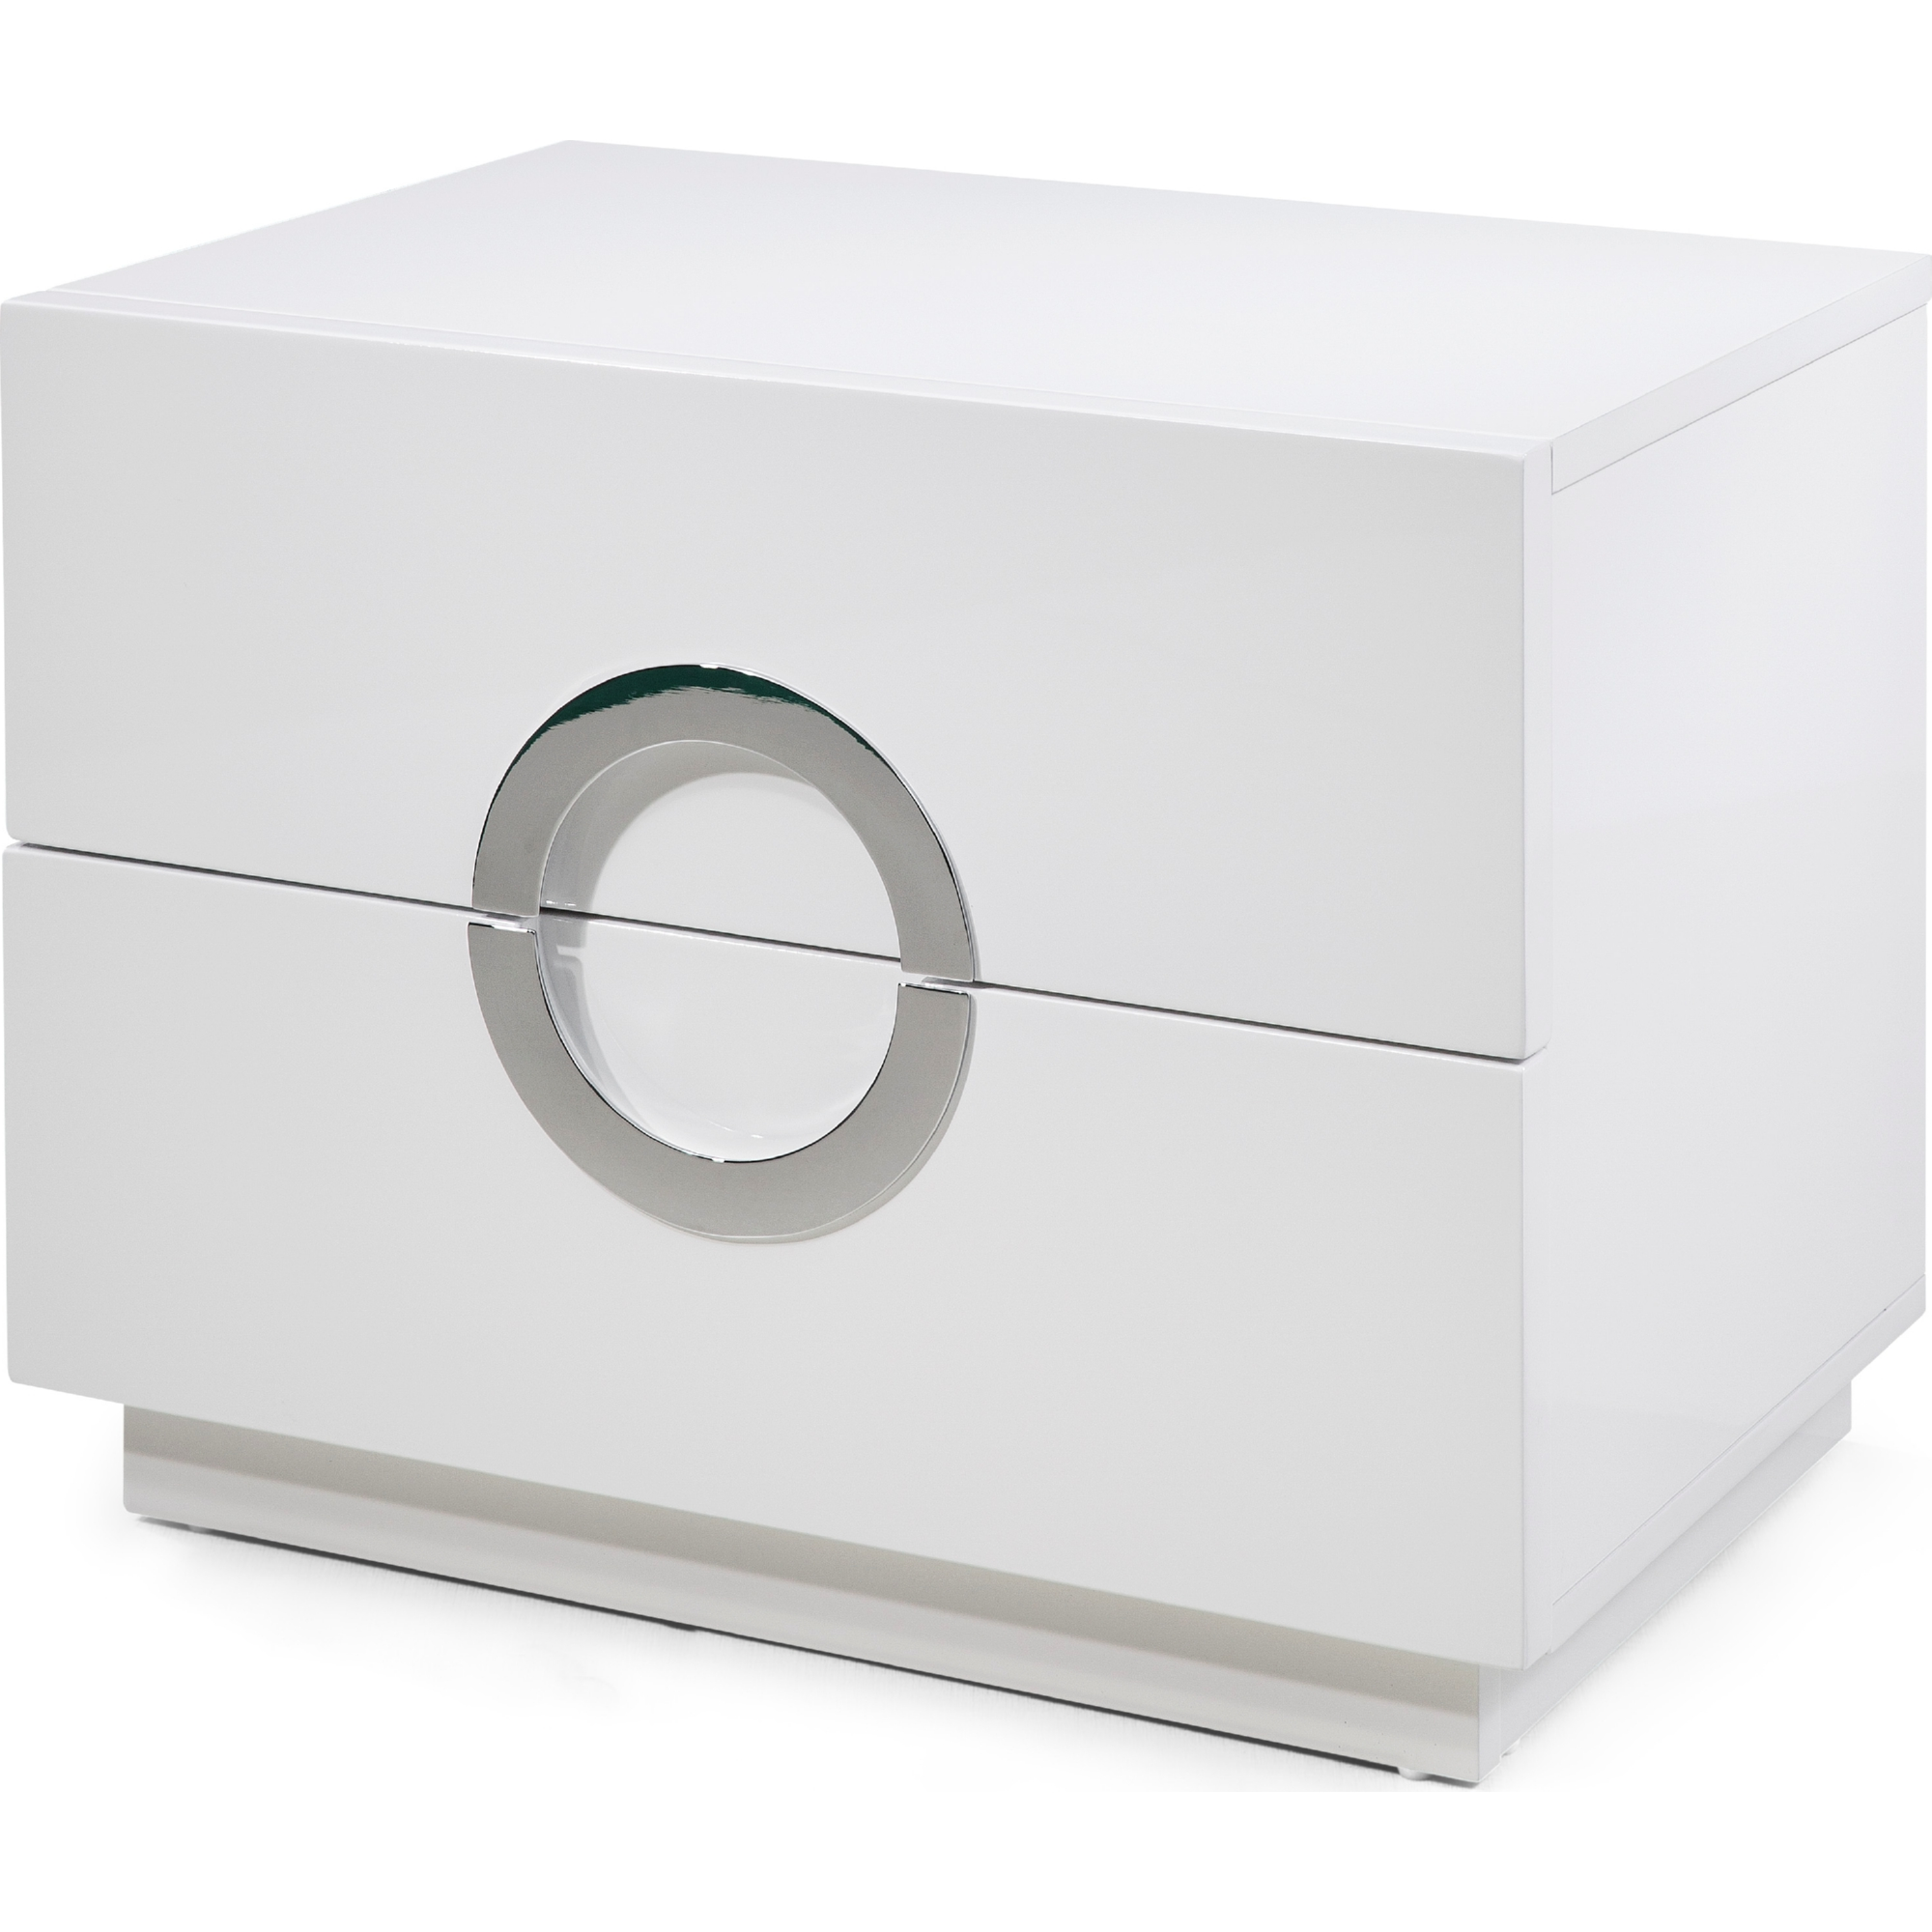 Eddy Night Stand Large High Gloss White W Round Stainless Steel Handles By Whiteline Imports